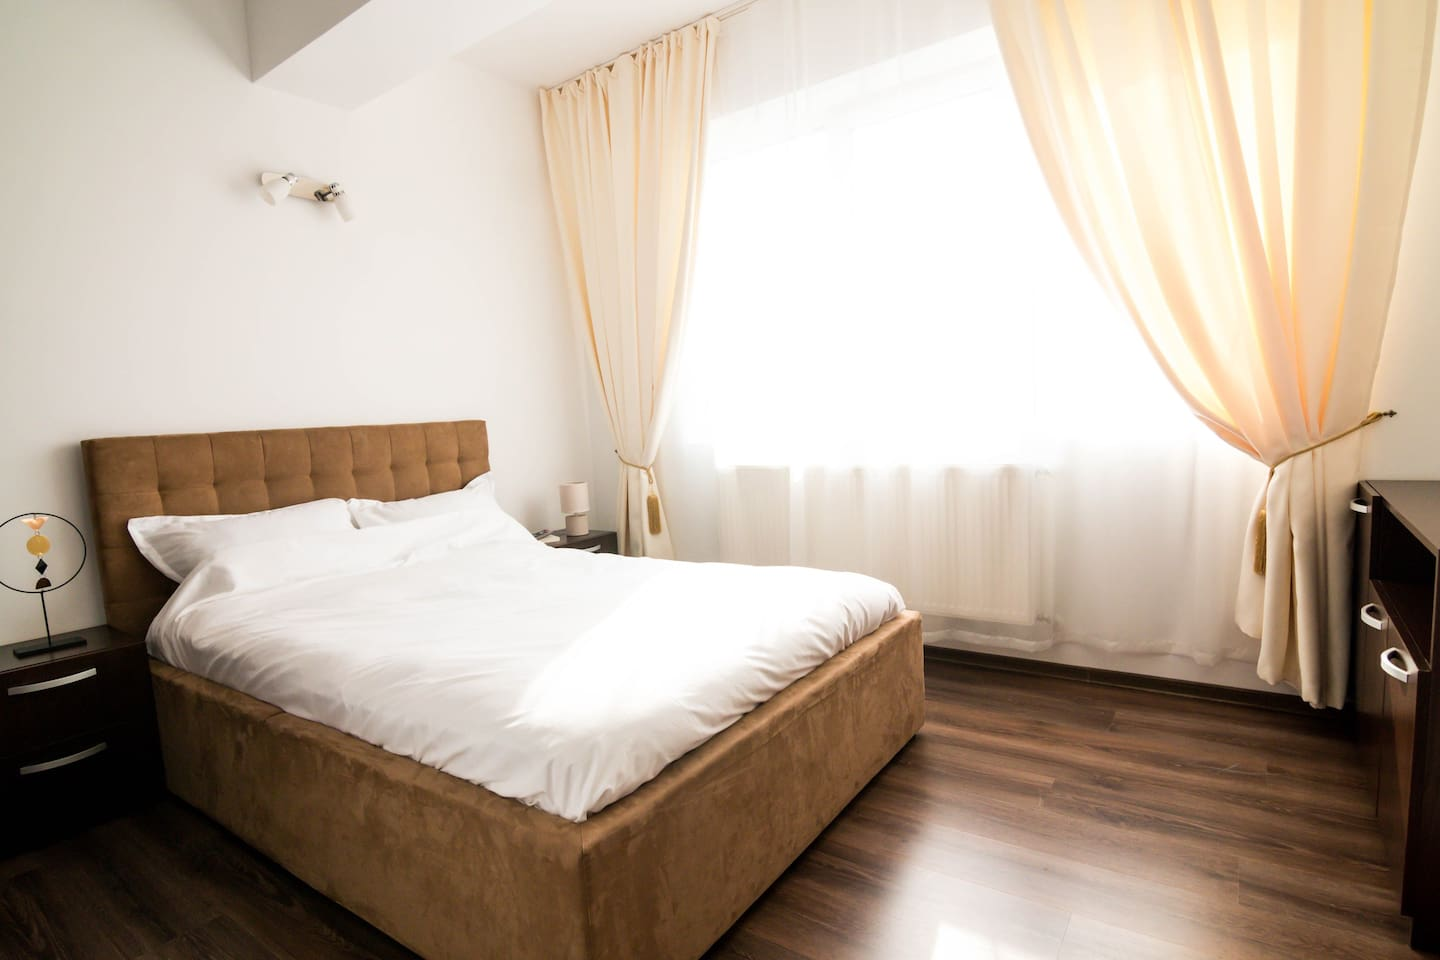 Yvona:  ''It was PERFECT! Perfect place - 10 minutes by foot to Palace Mall and to everything we needed for this trip. Very clean and everything was there. We are really happy that we booked this accomodation...''  May 2019